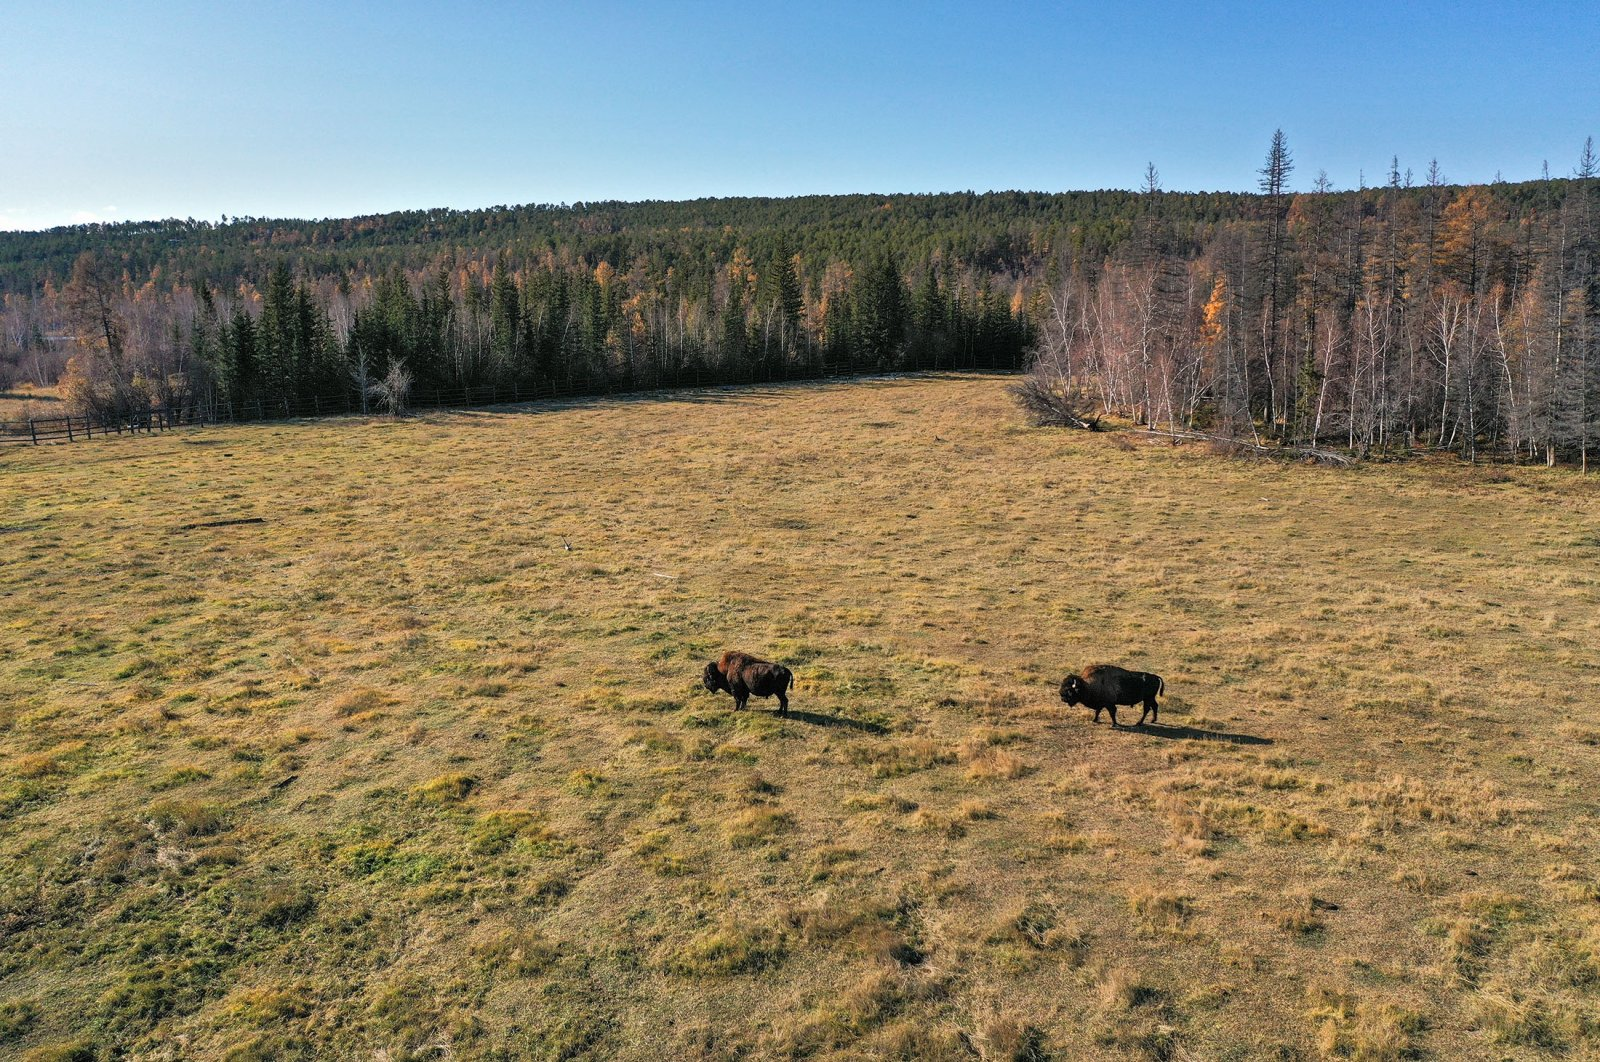 General view of a forest in Russia's Yakutia. (Shutterstock Photo)